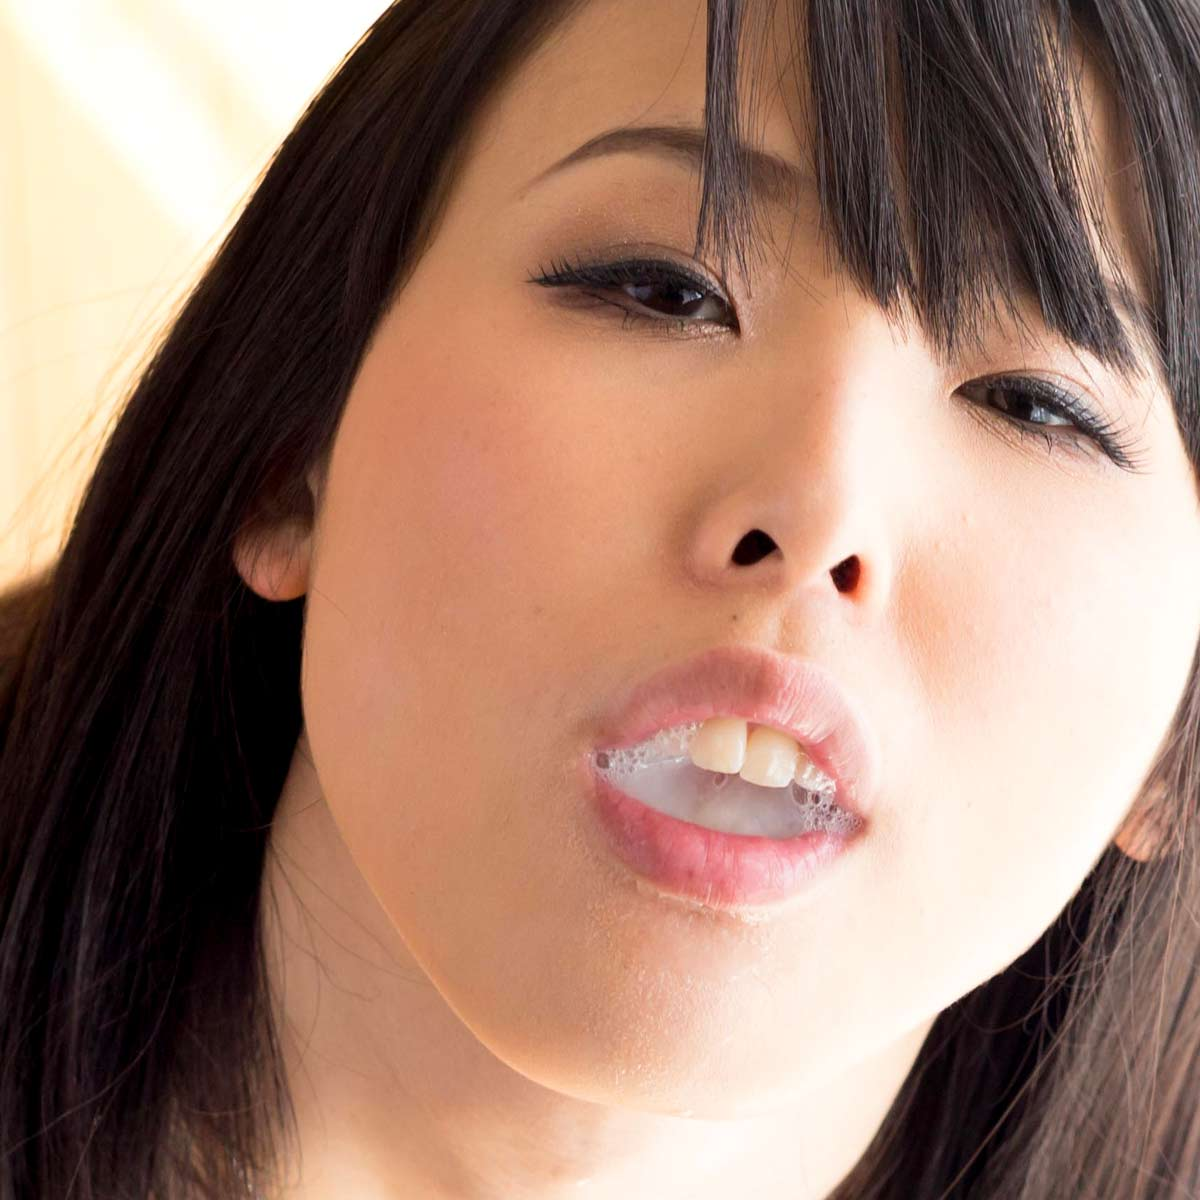 CumBuffet, where girls suck cock and swallow cum. Cum Buffet carefully select the finest sperm eating girls from around the world. Fellatio champions who expertly suck penises until they explode, then hungrily devour their tasty snack. The very best Blowjob videos, performed by sperm hungry nude woman.